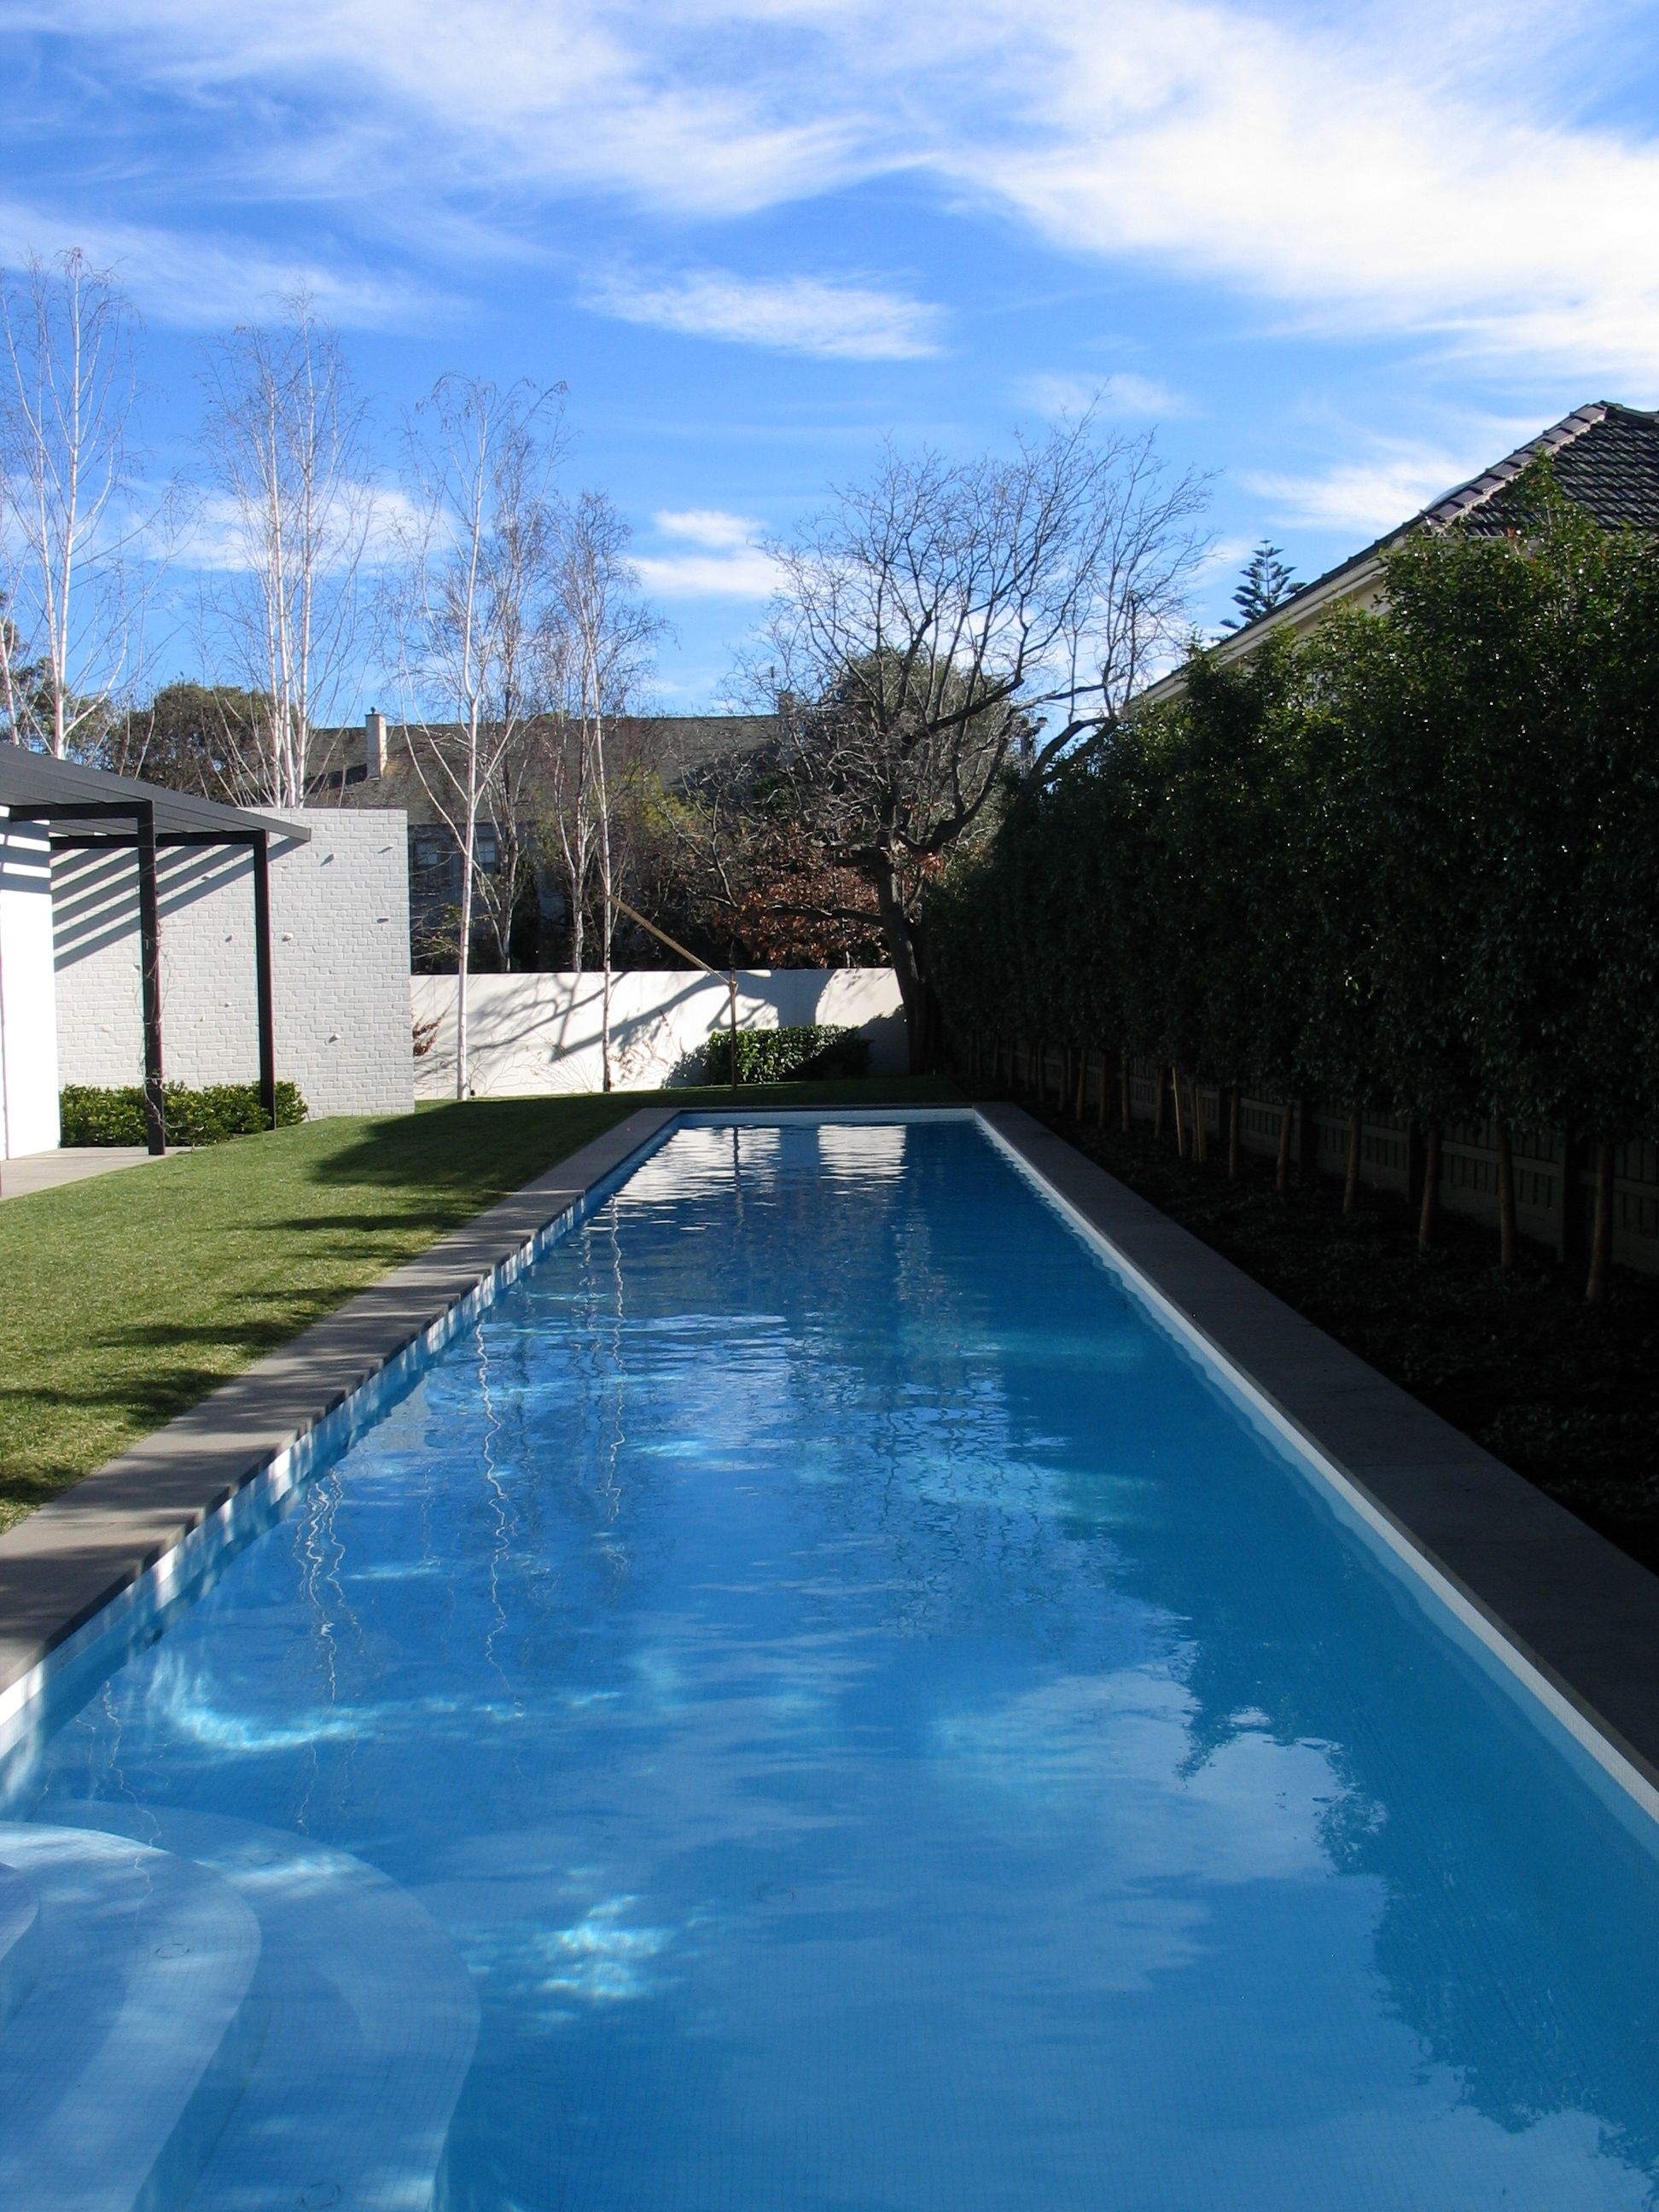 20m Lap Pool With White Bisazza Glass Mosaic Tiles And Bluestone Coping Designed By Allan Powell Architects Modern Pools Pool Houses Pool Paving